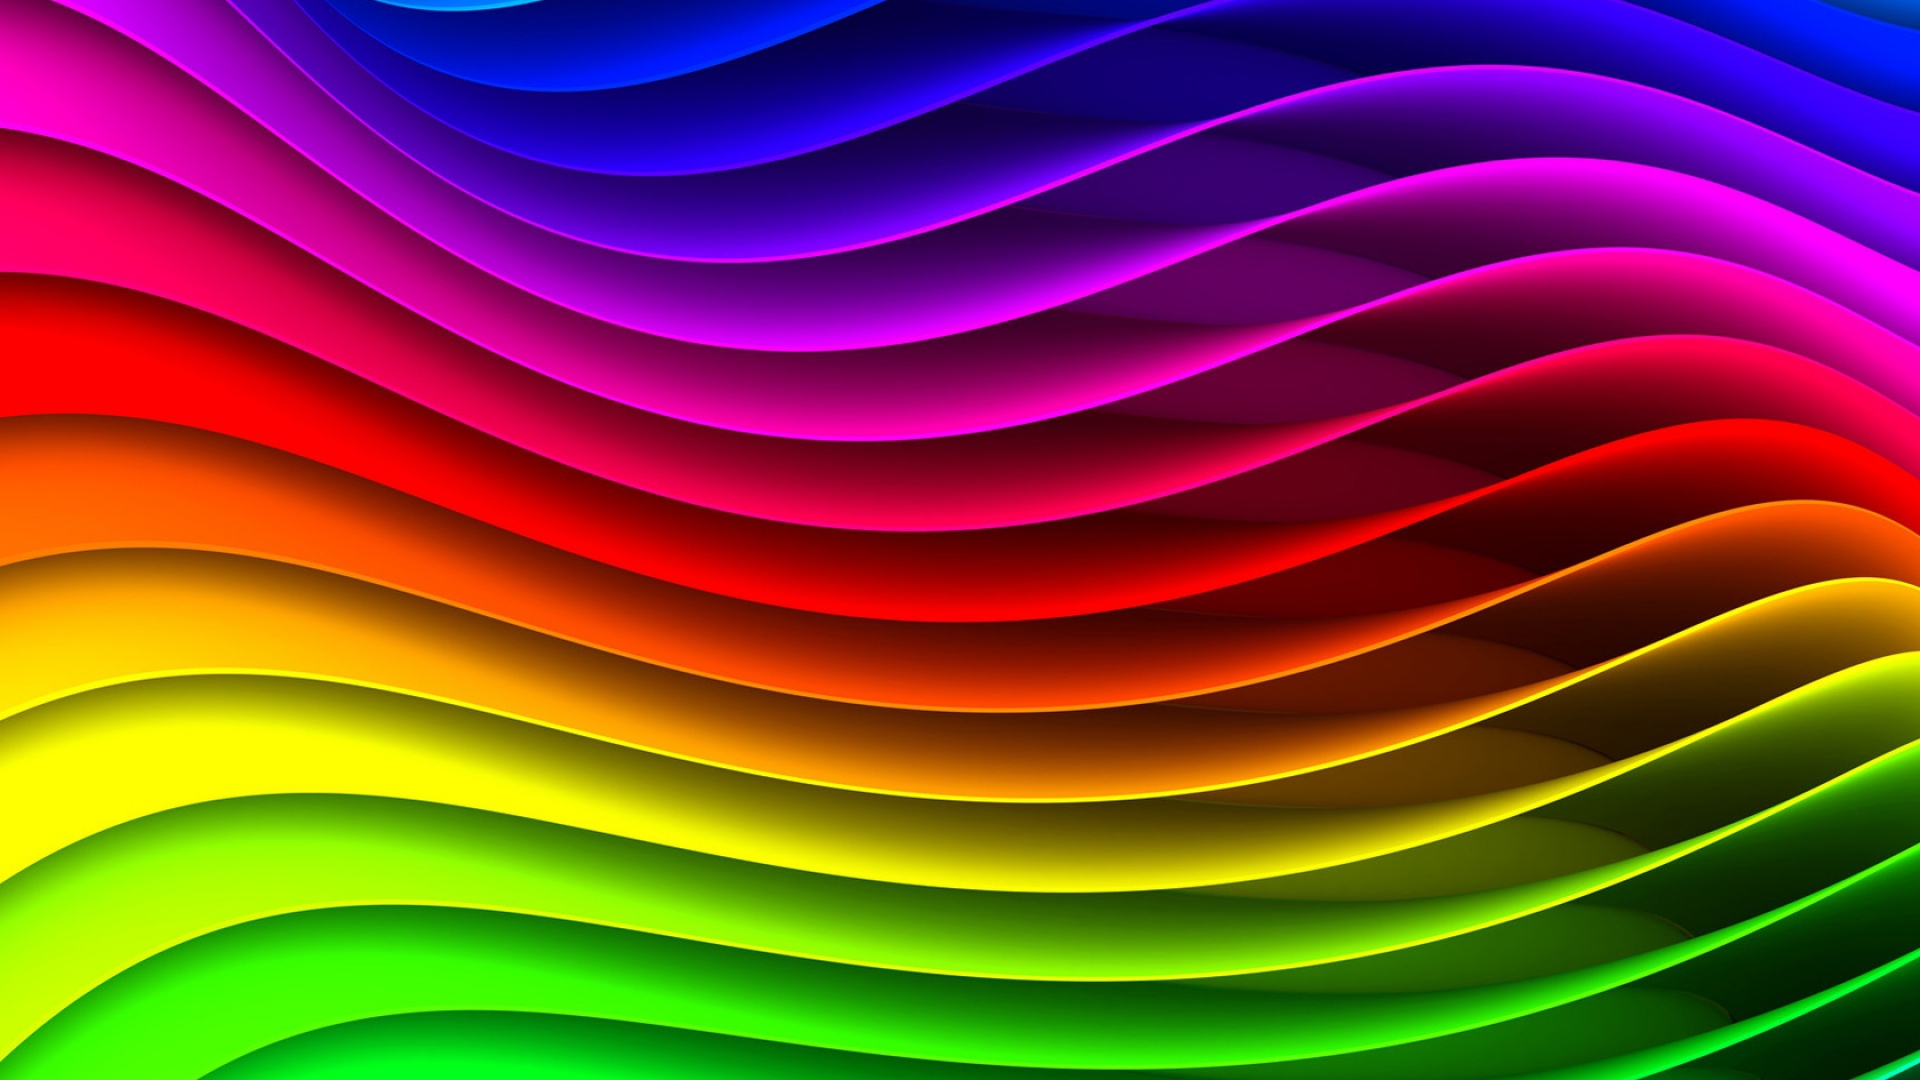 download wallpaper 1920x1080 spectrum rainbow background